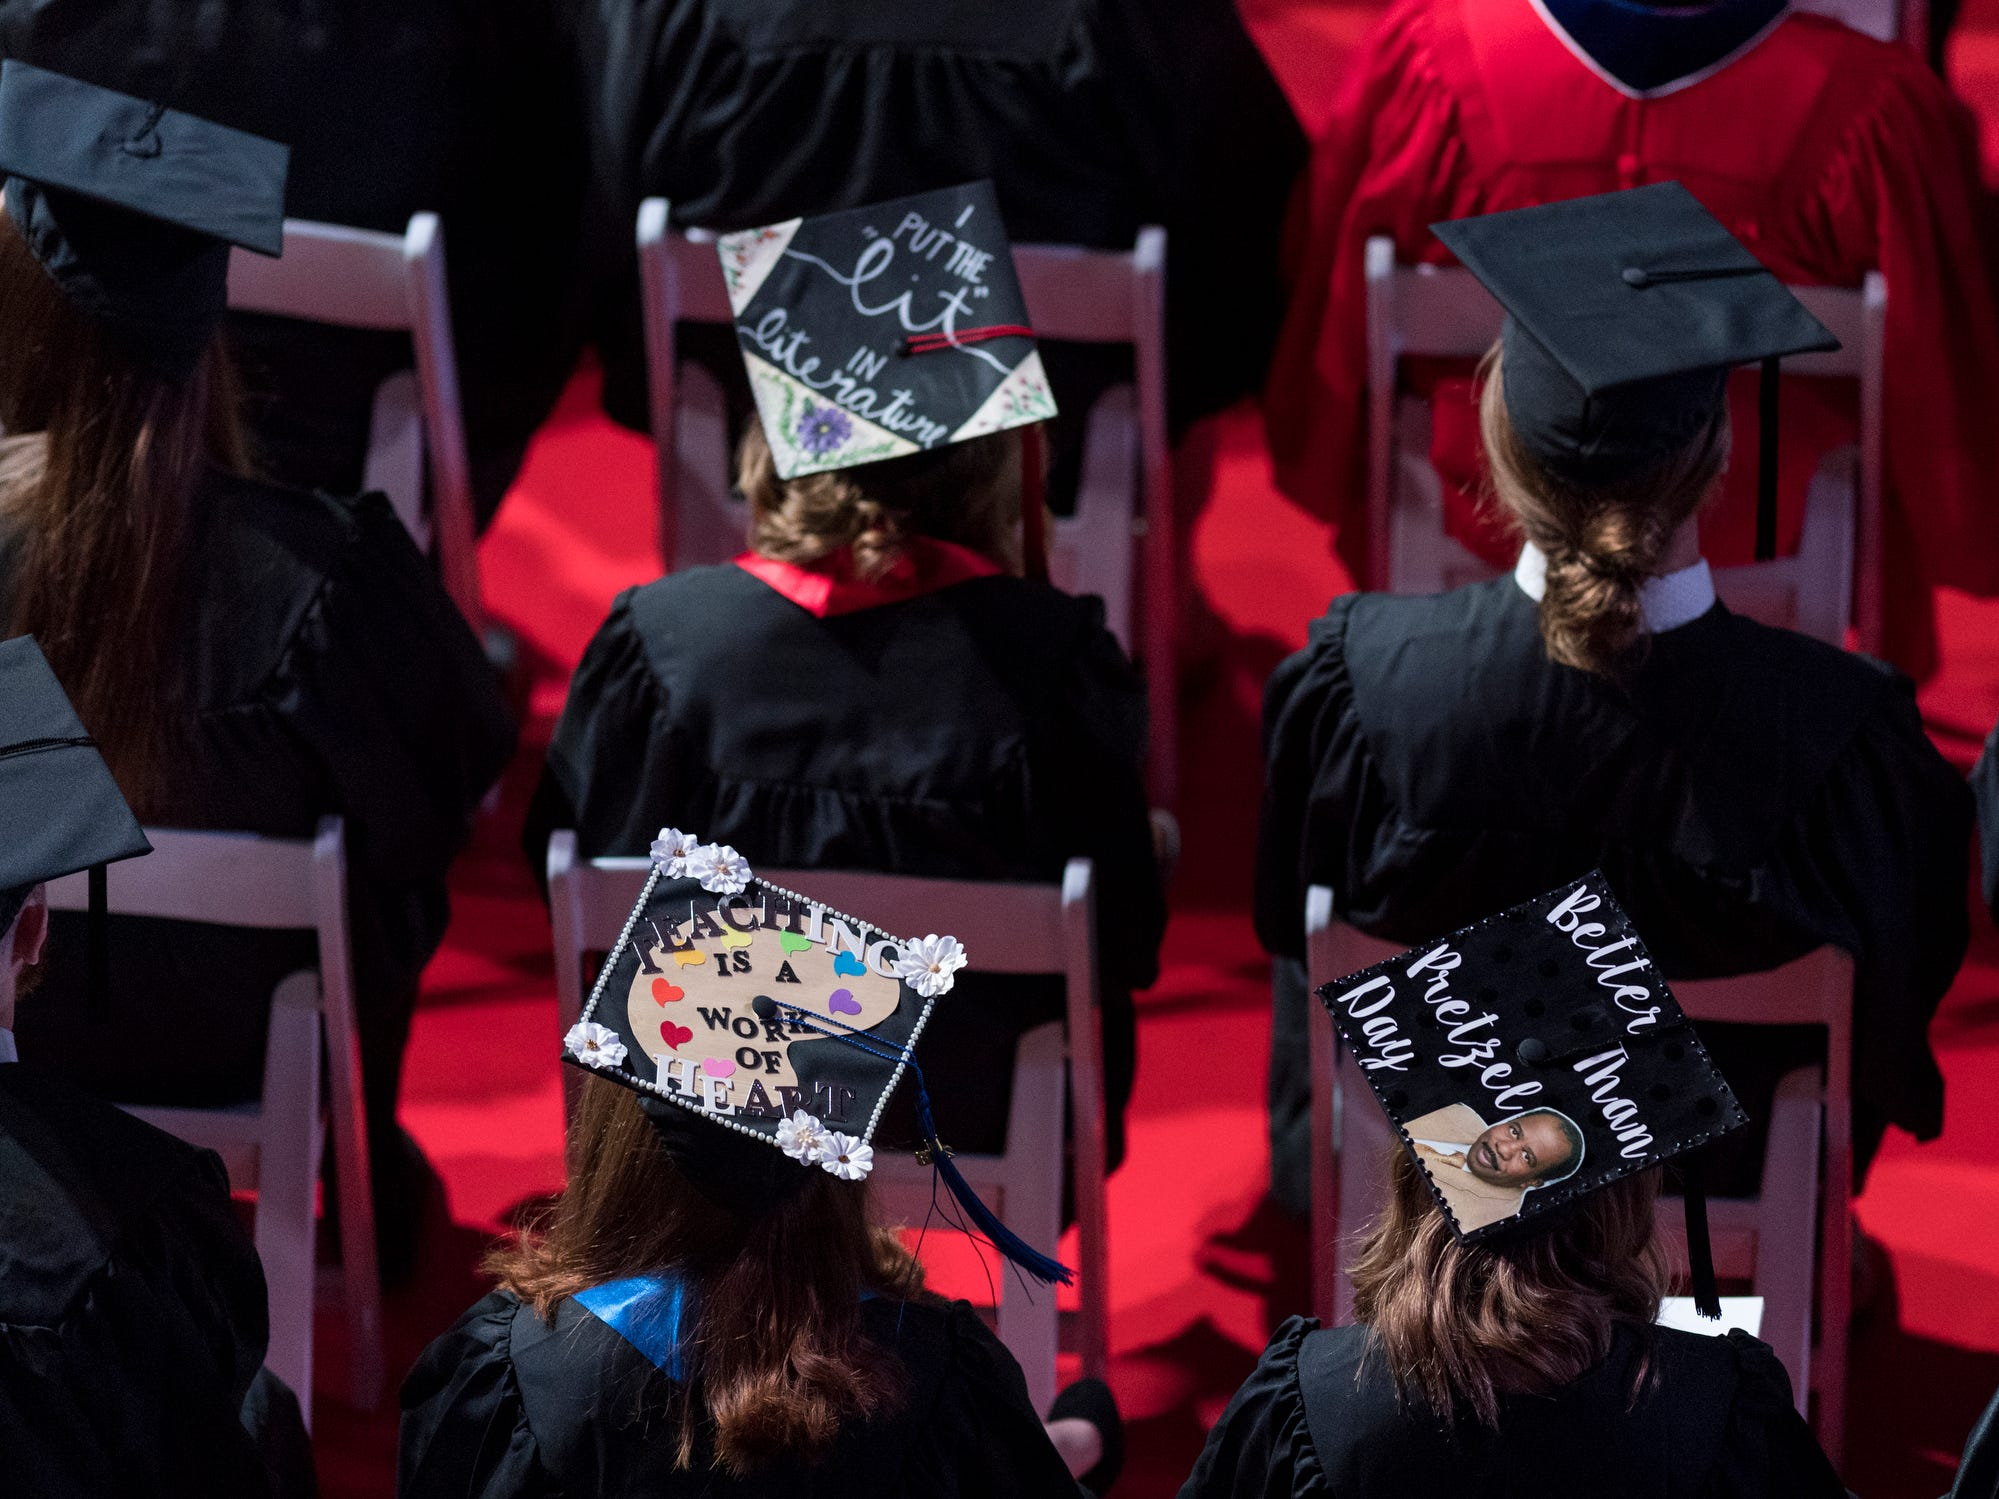 Graduates listen to the commencement address during the fall commencement ceremony for the University of Southern Indiana's College of Liberal Arts and the Romain College of Business inside the Physical Activities Center in Evansville, Ind., Saturday, Dec. 8, 2018.